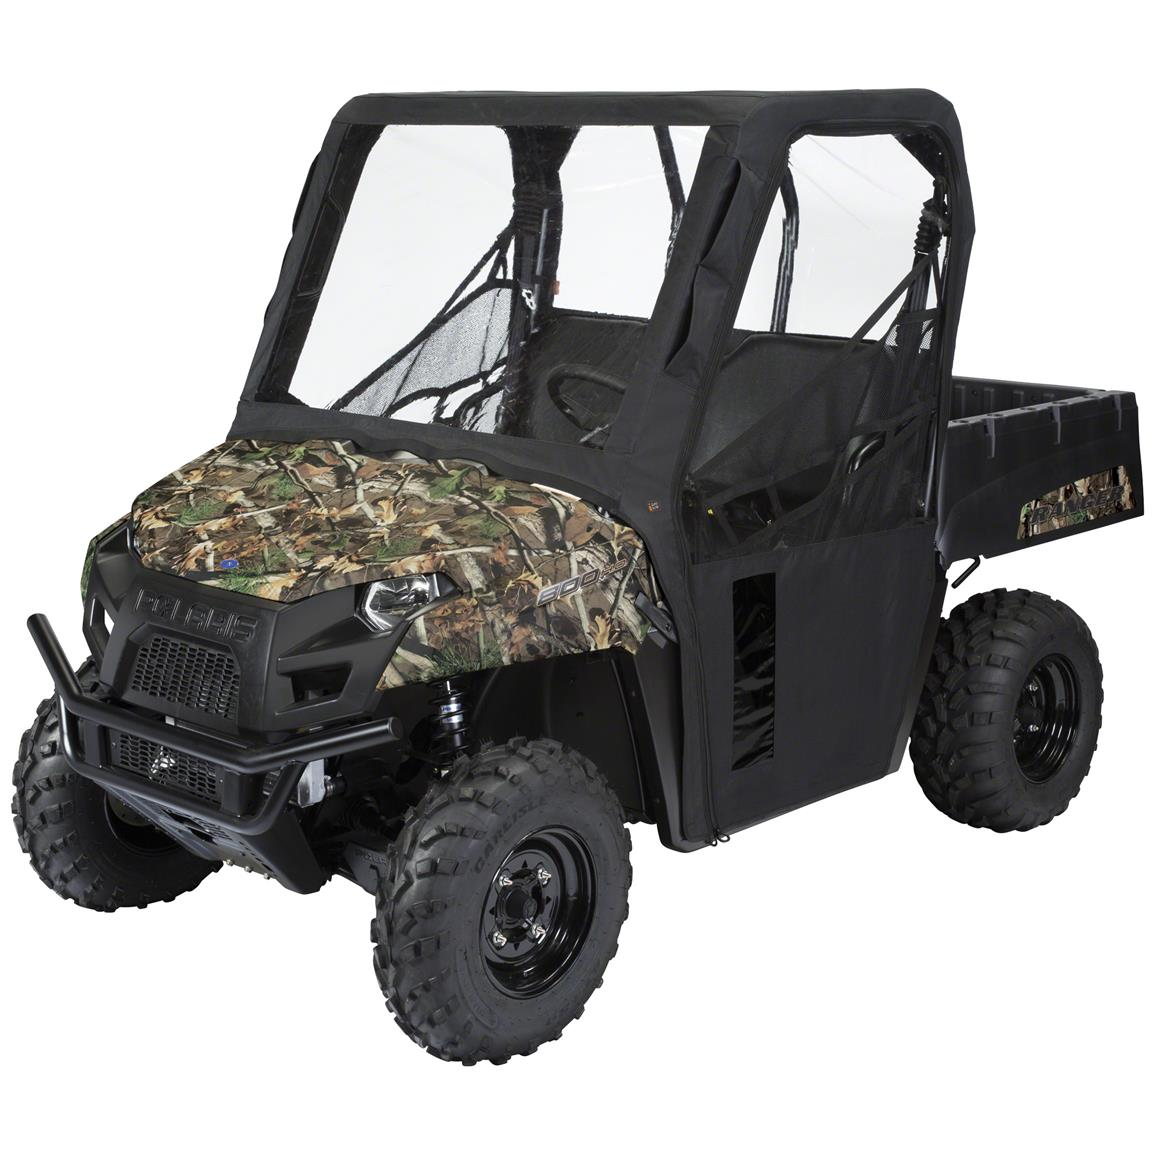 Quad Gear UTV Cab Enclosure, Yamaha Rhino, Black